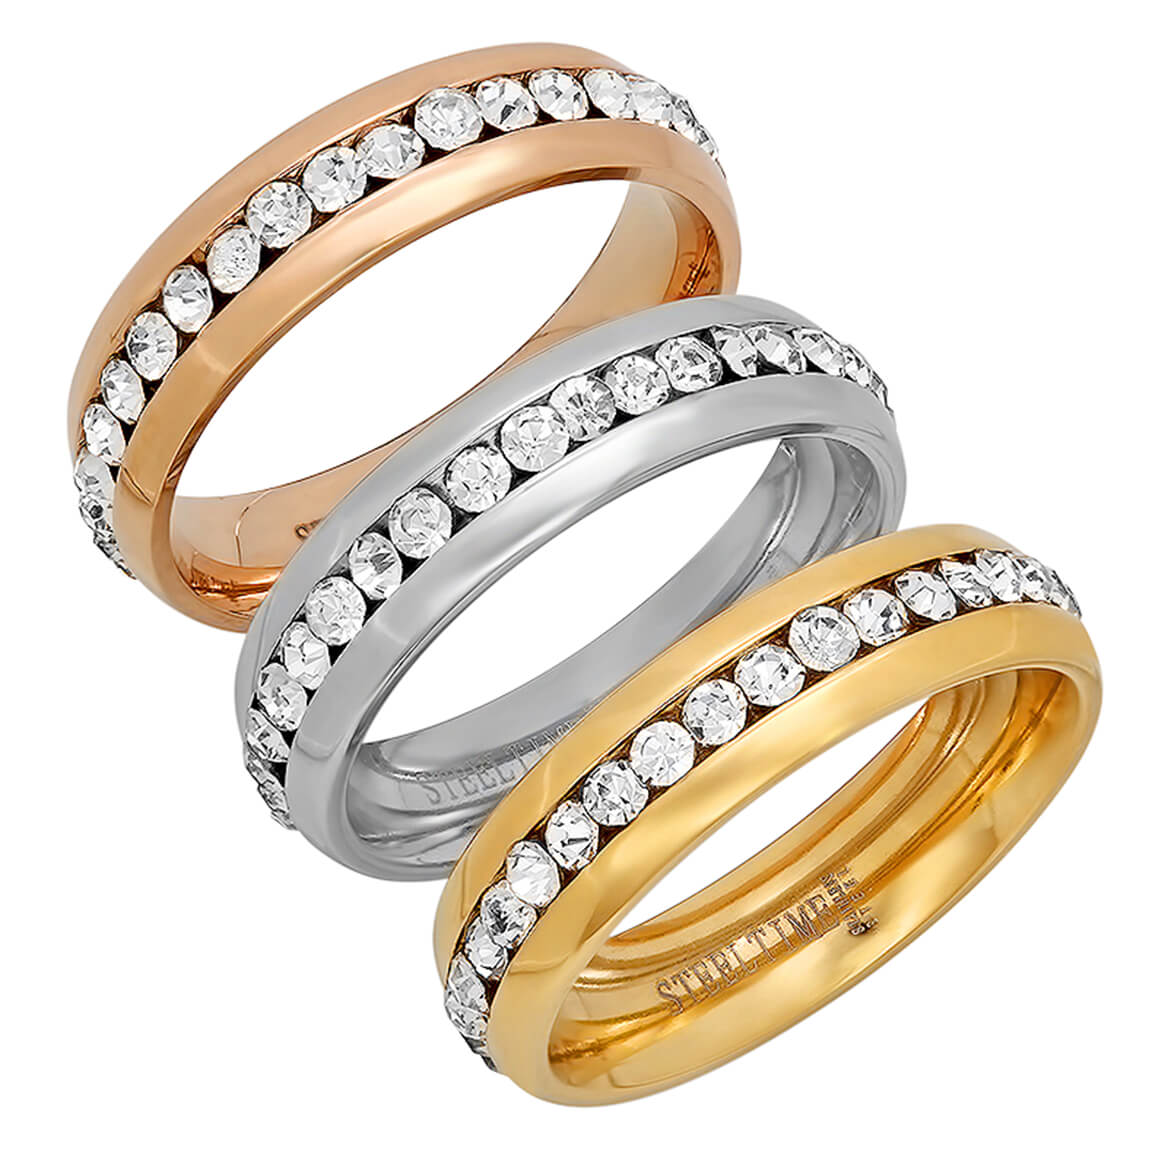 CZ Eternity Band Rings Set of 3          VR